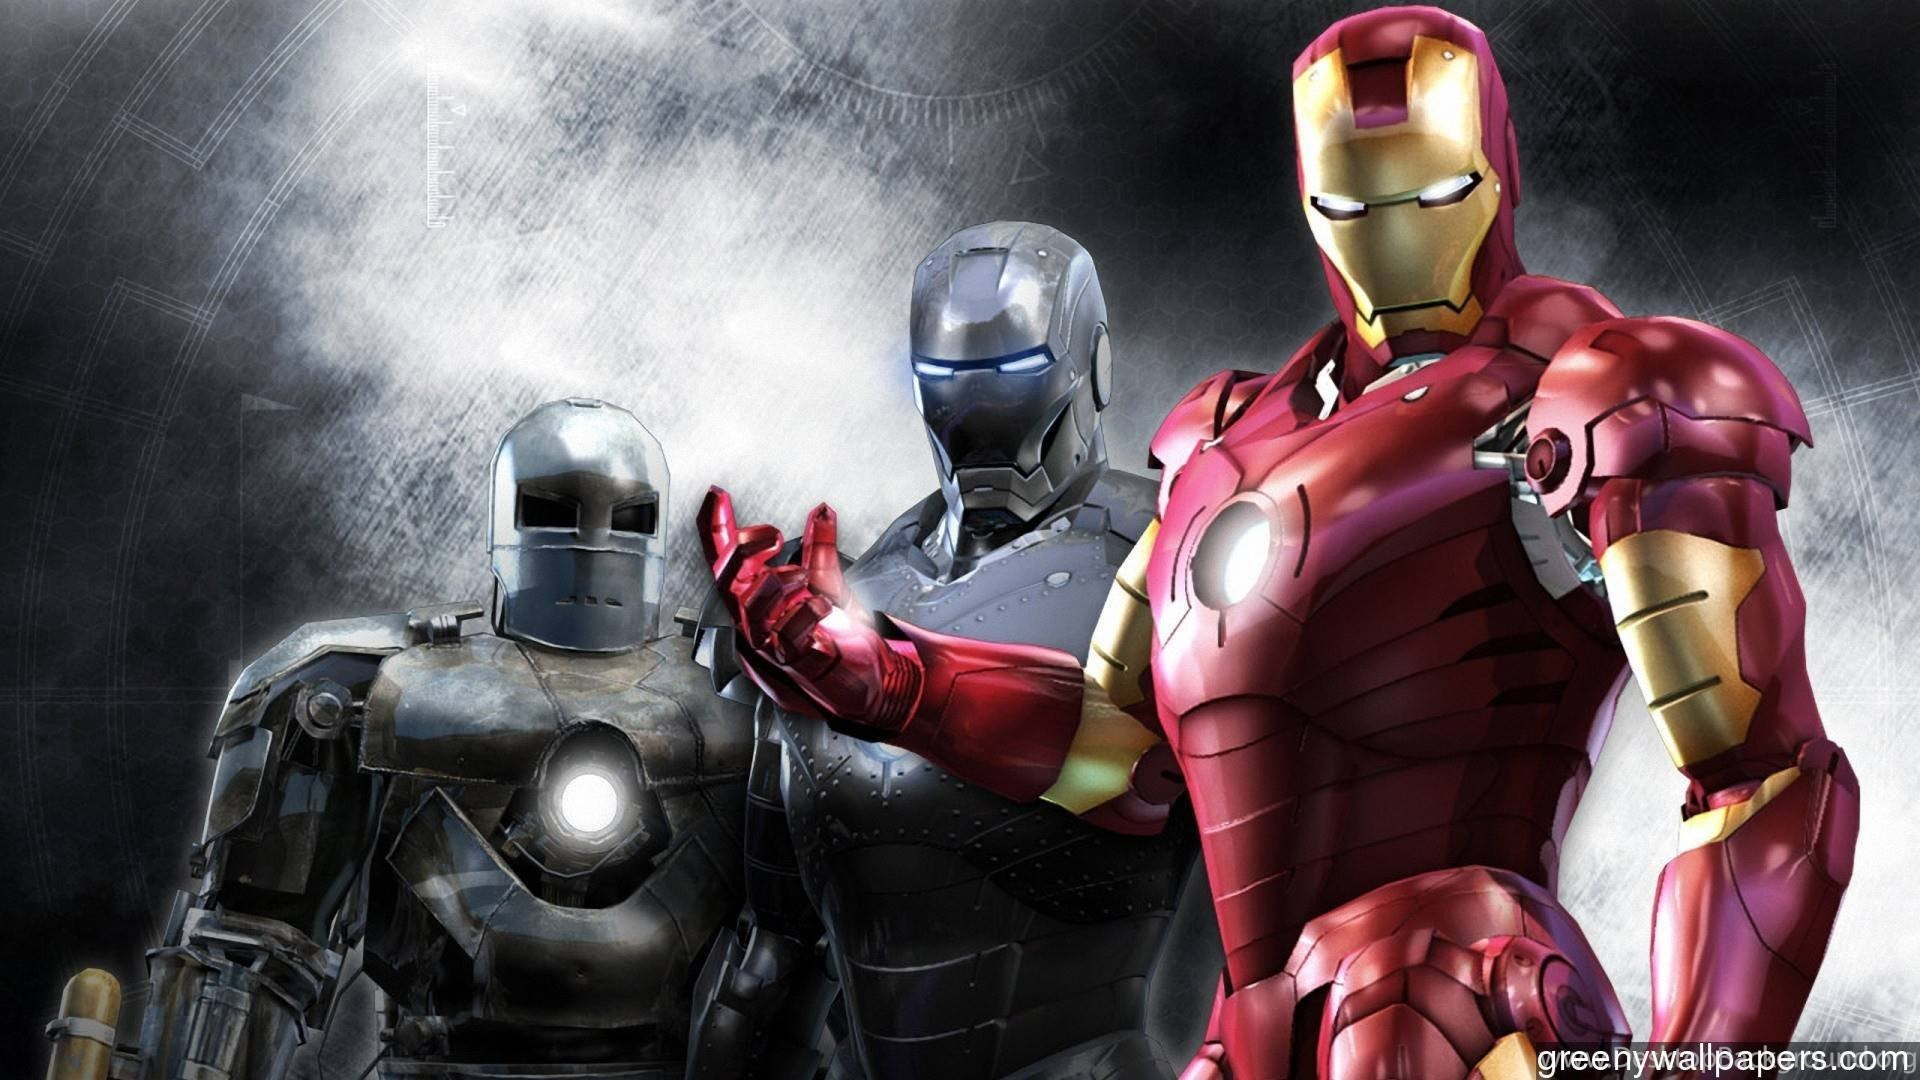 download iron man 3 suits backgrounds hd 1920x1080 wallpapers